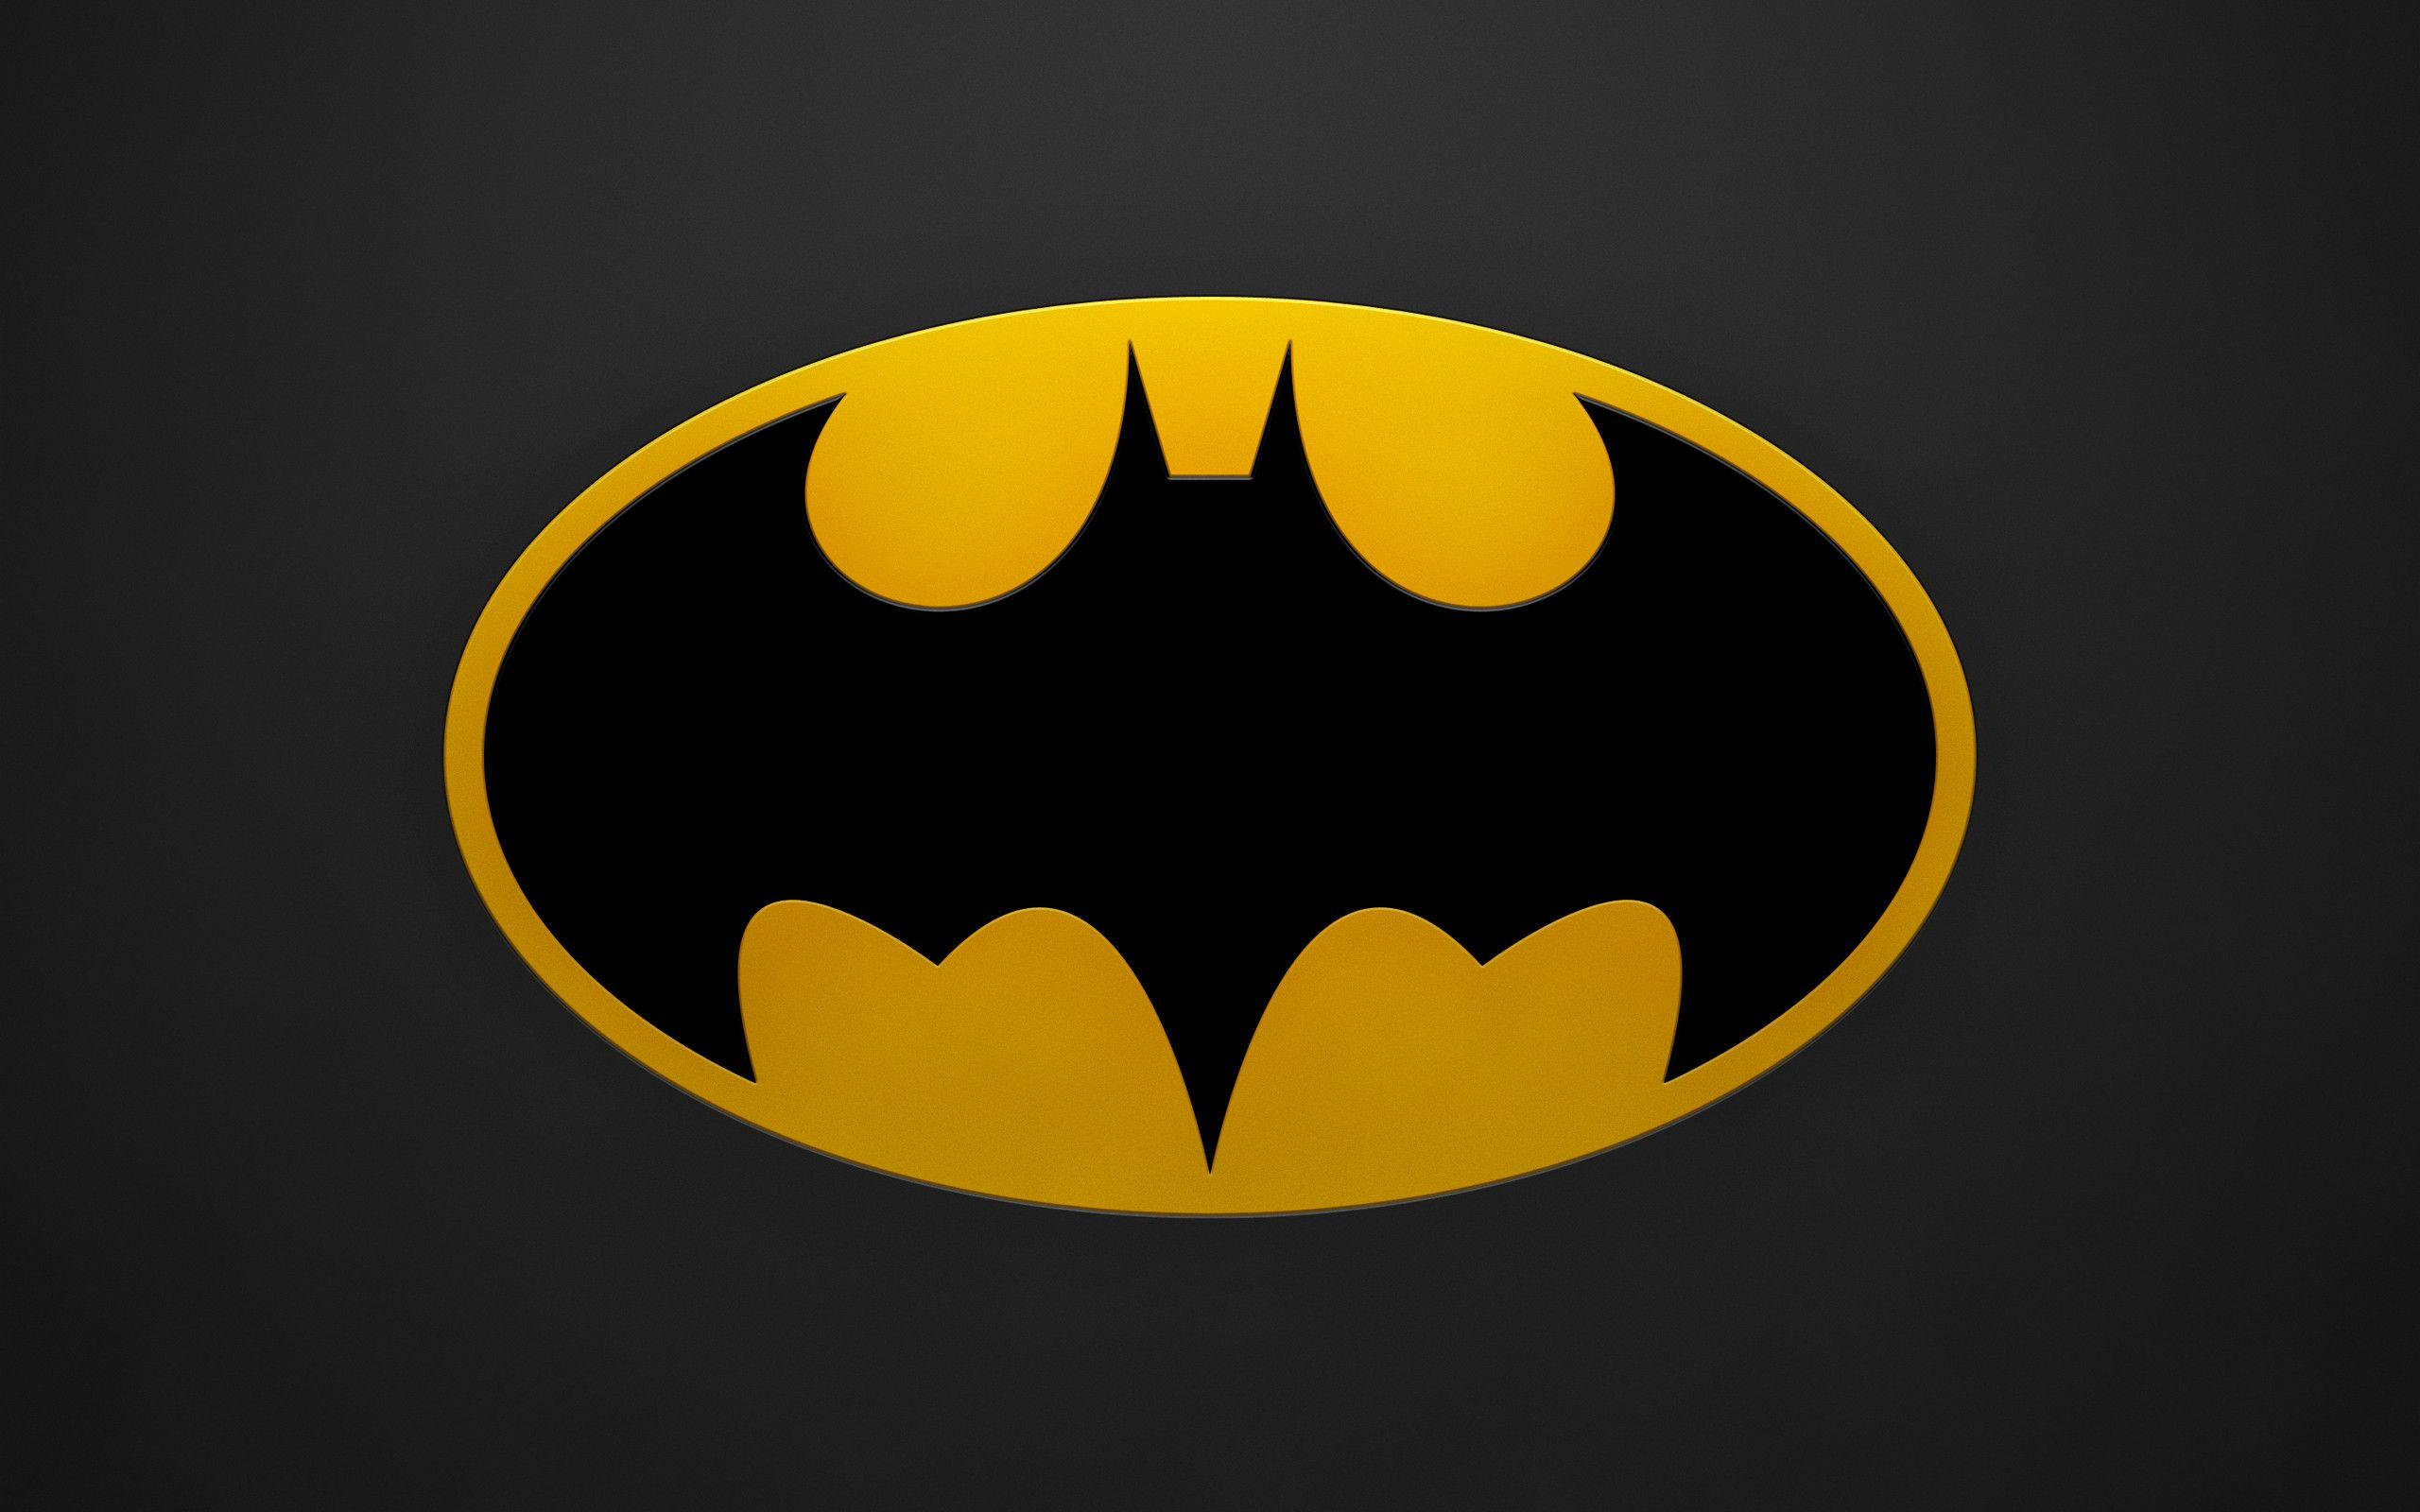 Batman symbol wallpapers wallpaper cave Batman symbol